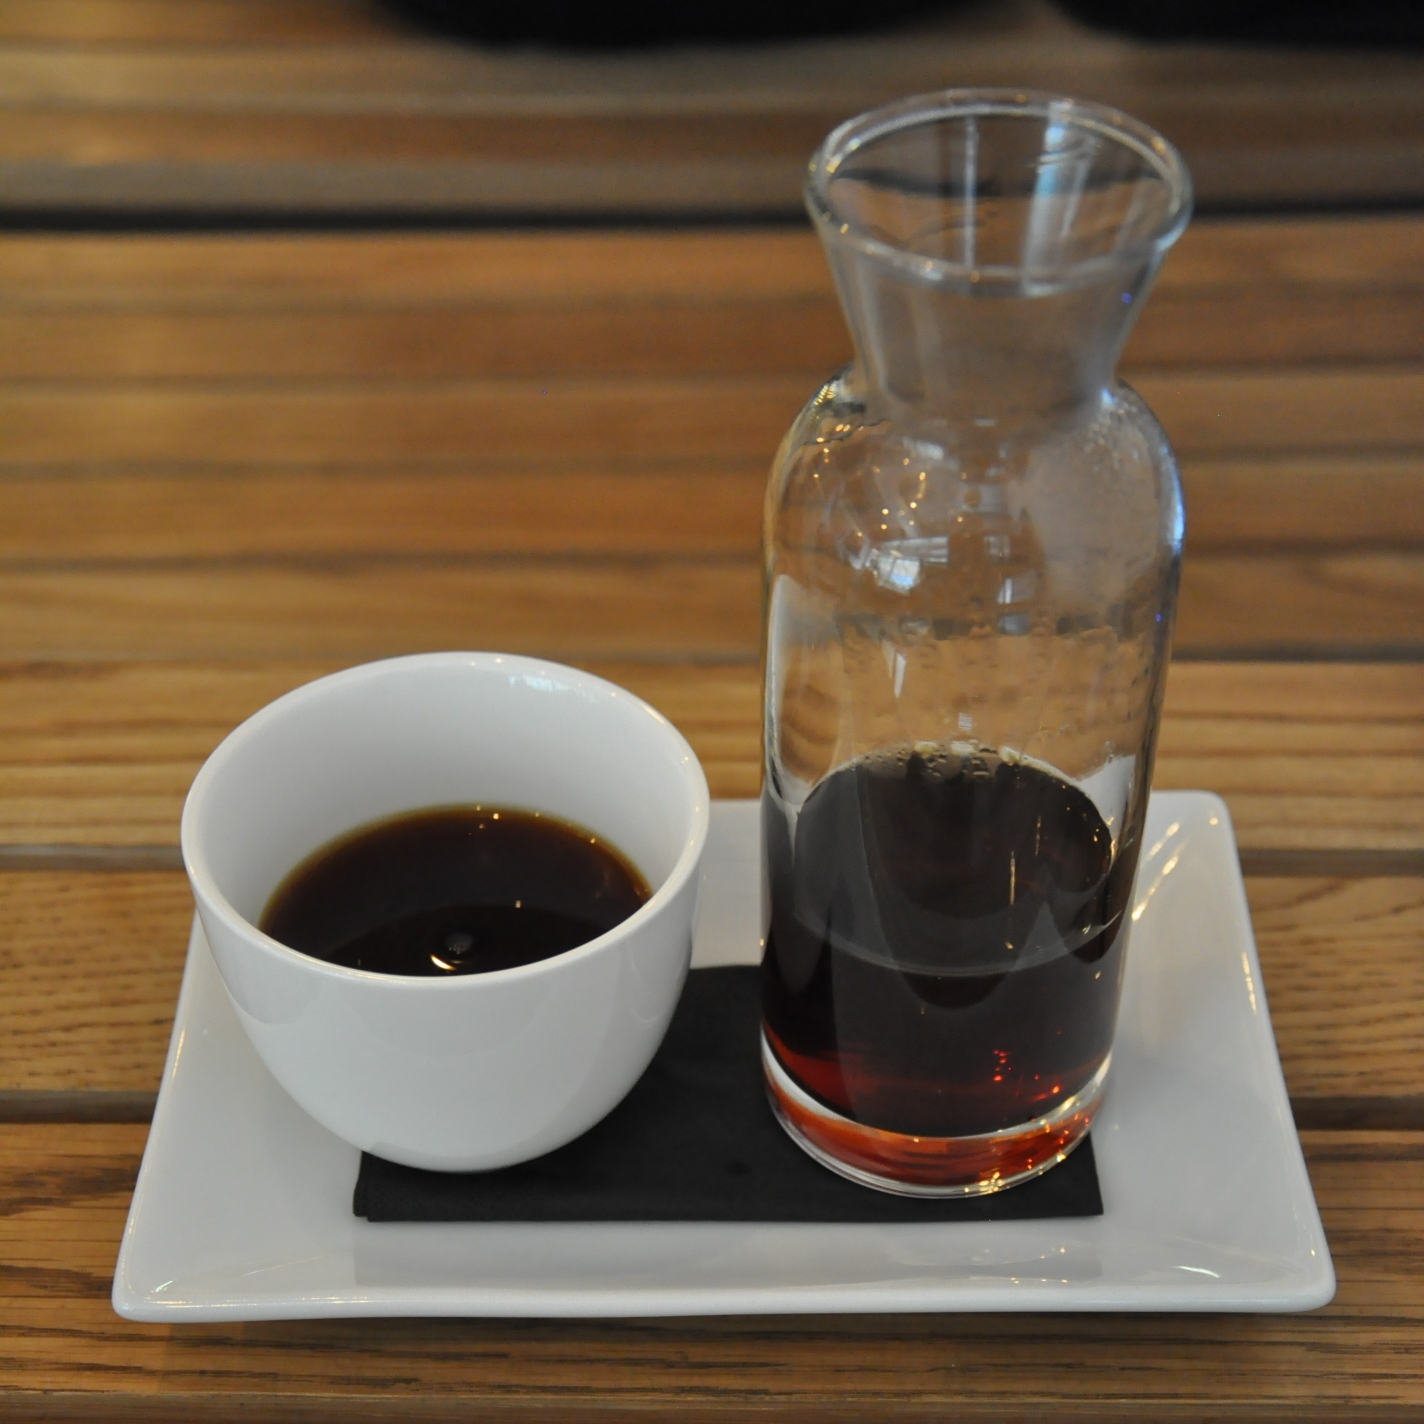 An Ethiopian Duromina from Workshop at Sharps Coffee Bar, beautifully presented in a glass carafe and a white, handless cup on a white china tray.